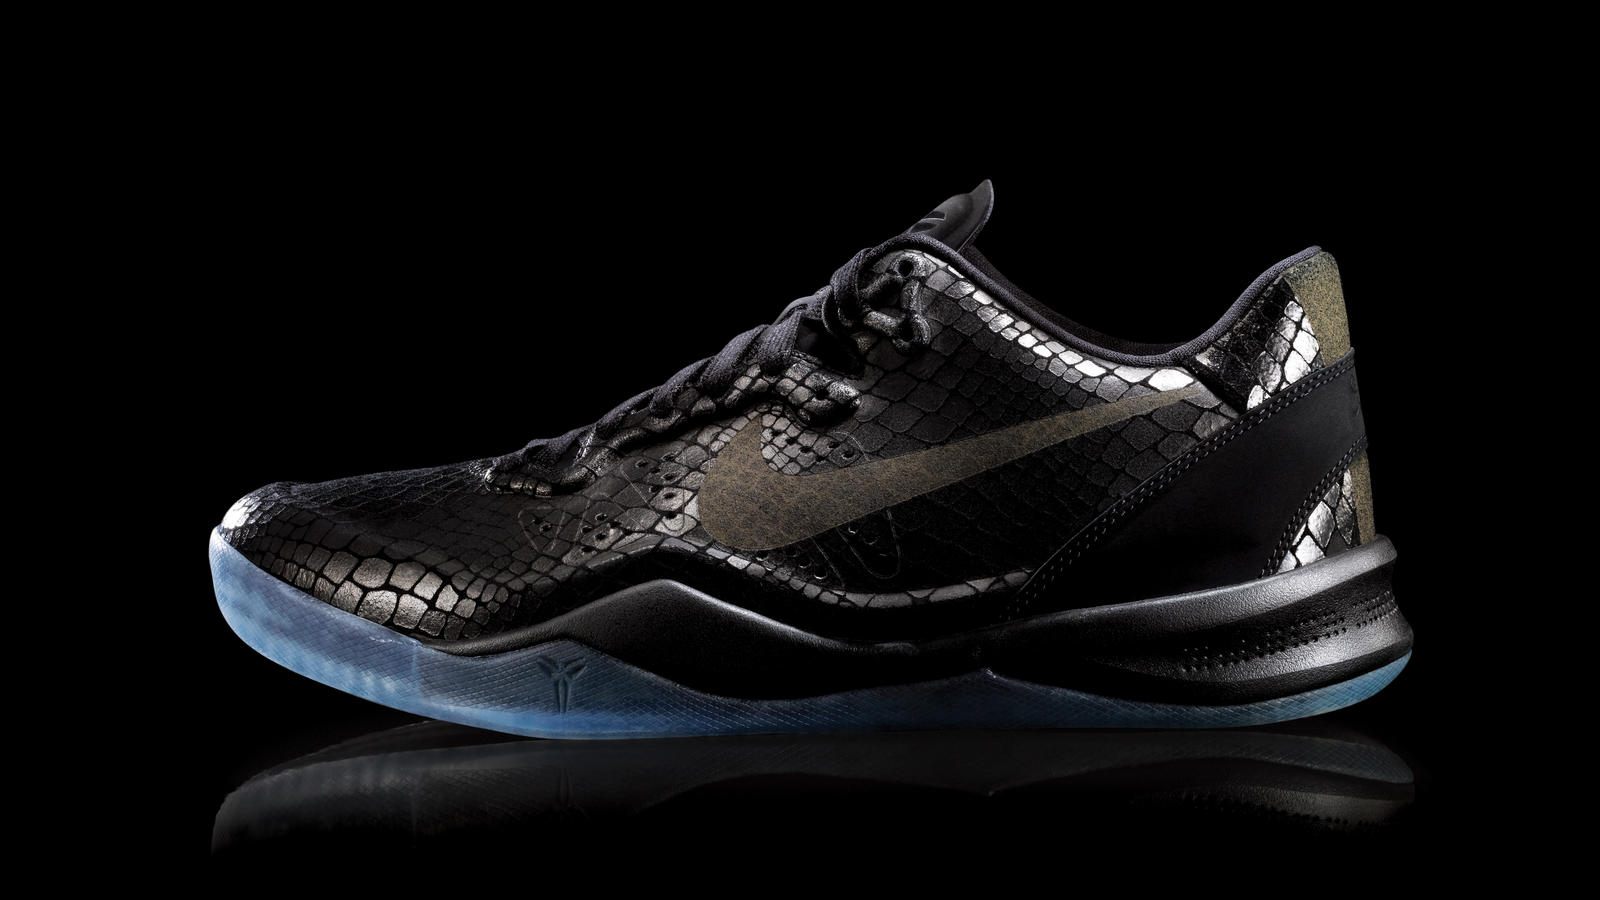 c11309d6 Nike unveils 2013 Year of the Snake collection - Nike News